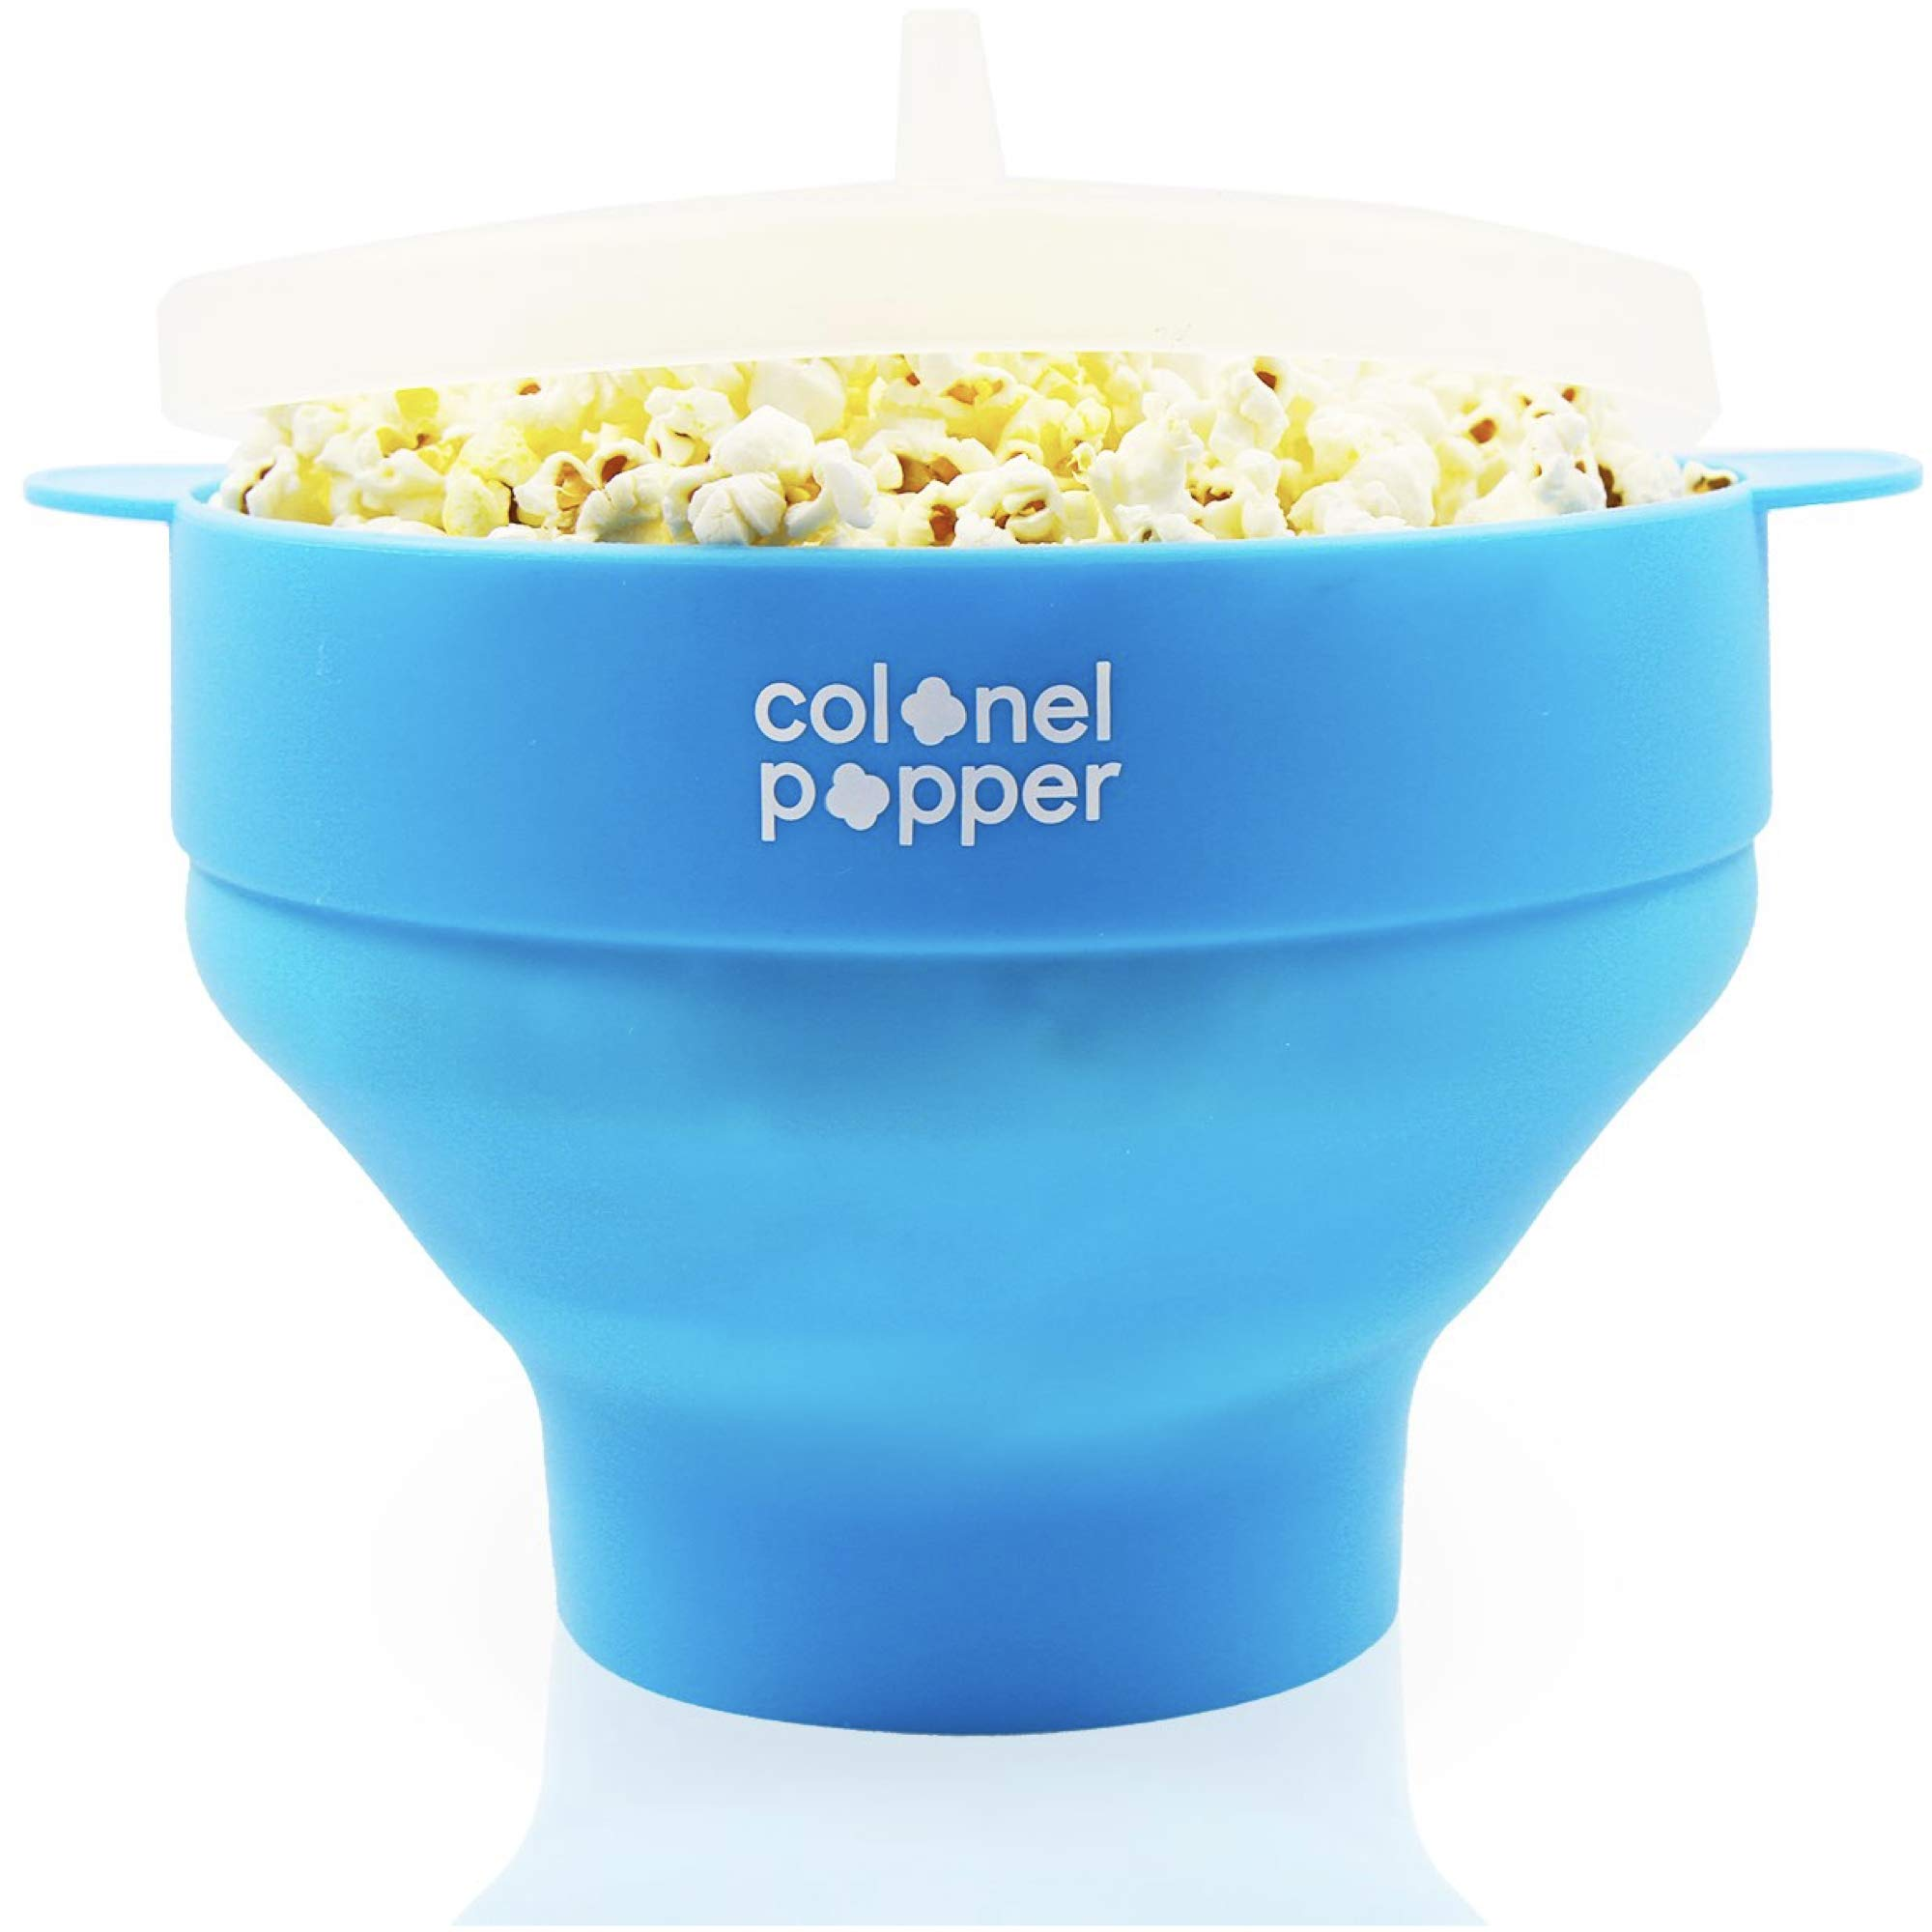 Colonel Popper Microwave Popcorn Maker Air Popper Silicone Bowl - Use any Kernels, Salt, Oil (Blue) by Colonel Popper